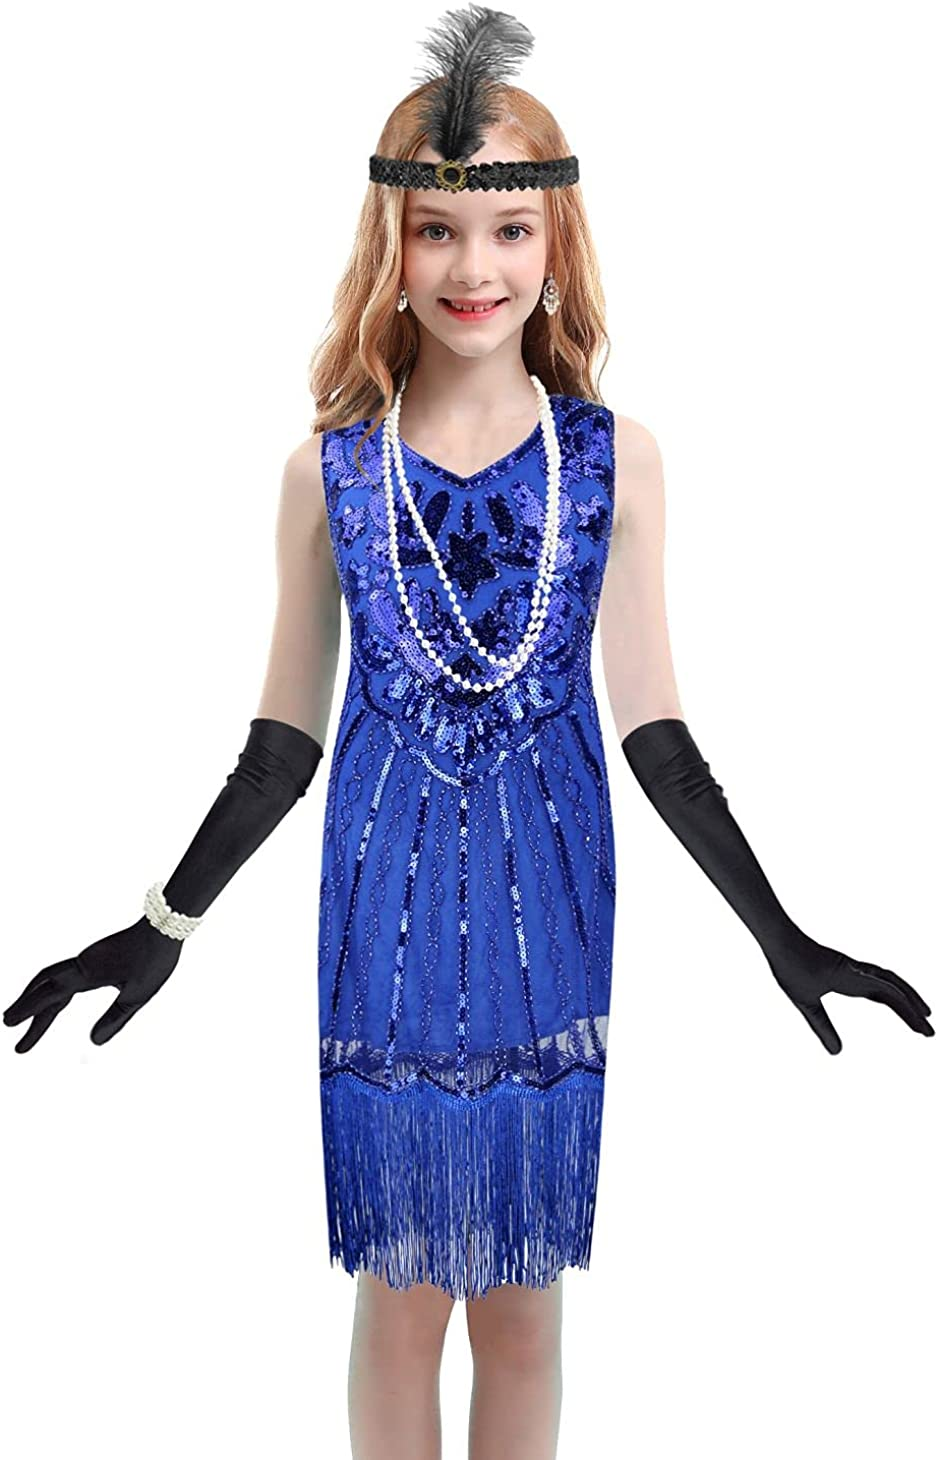 1920's Sequins ! Super beauty product restock quality top! Flapper Dress Children's Gift Day 40% OFF Cheap Sale Halloween Party